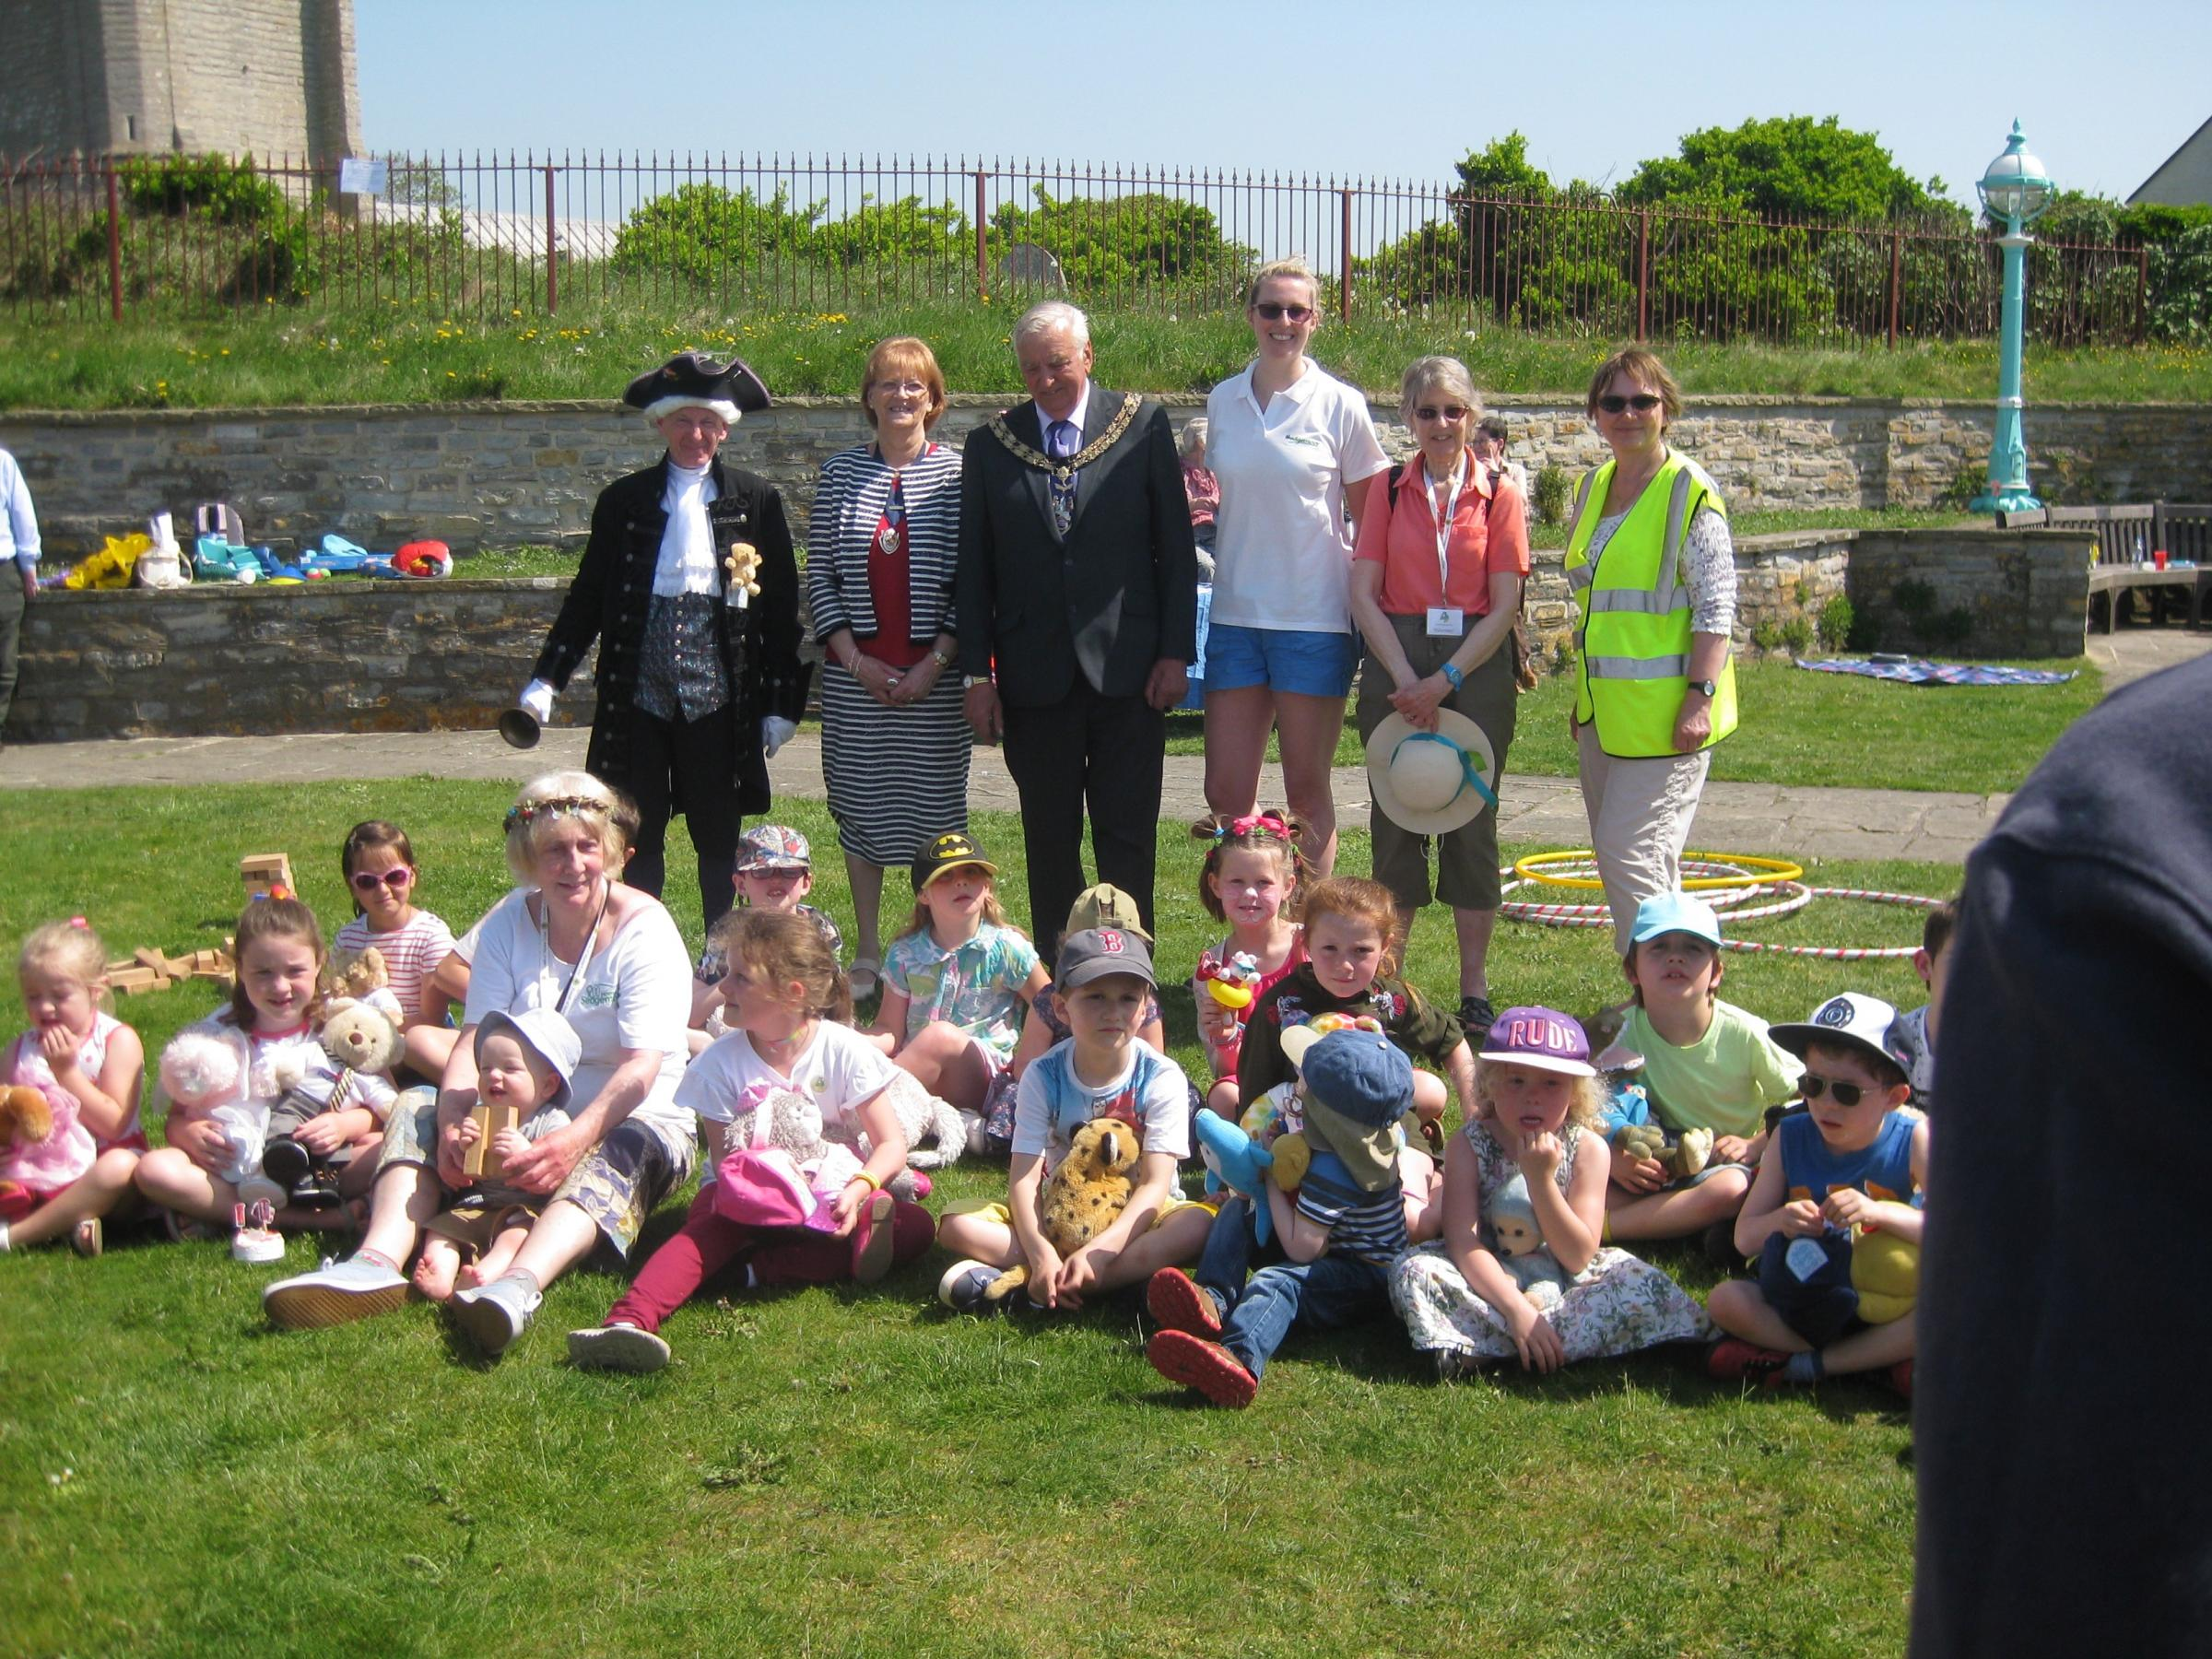 FUN IN THE SUN: The Mayor of Burnham-on-Sea Cllr Bill Hancock and The Friends of Marine Cove Gardens smile with visitors in the sunshine